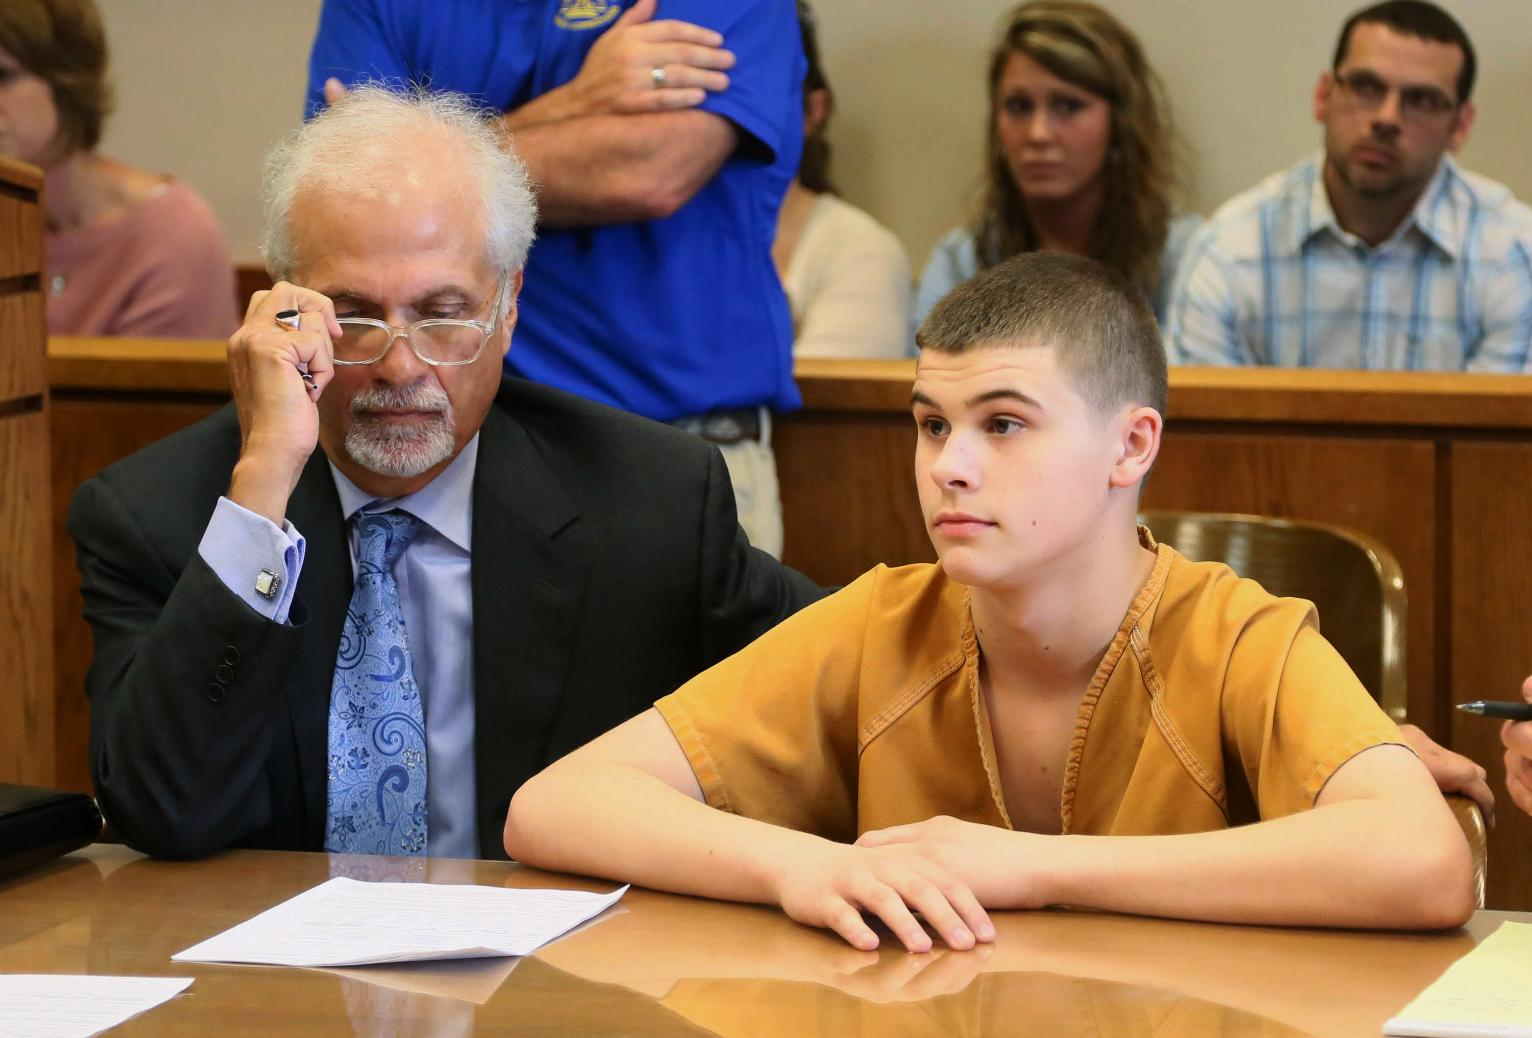 Teen court is sentencing court think, that